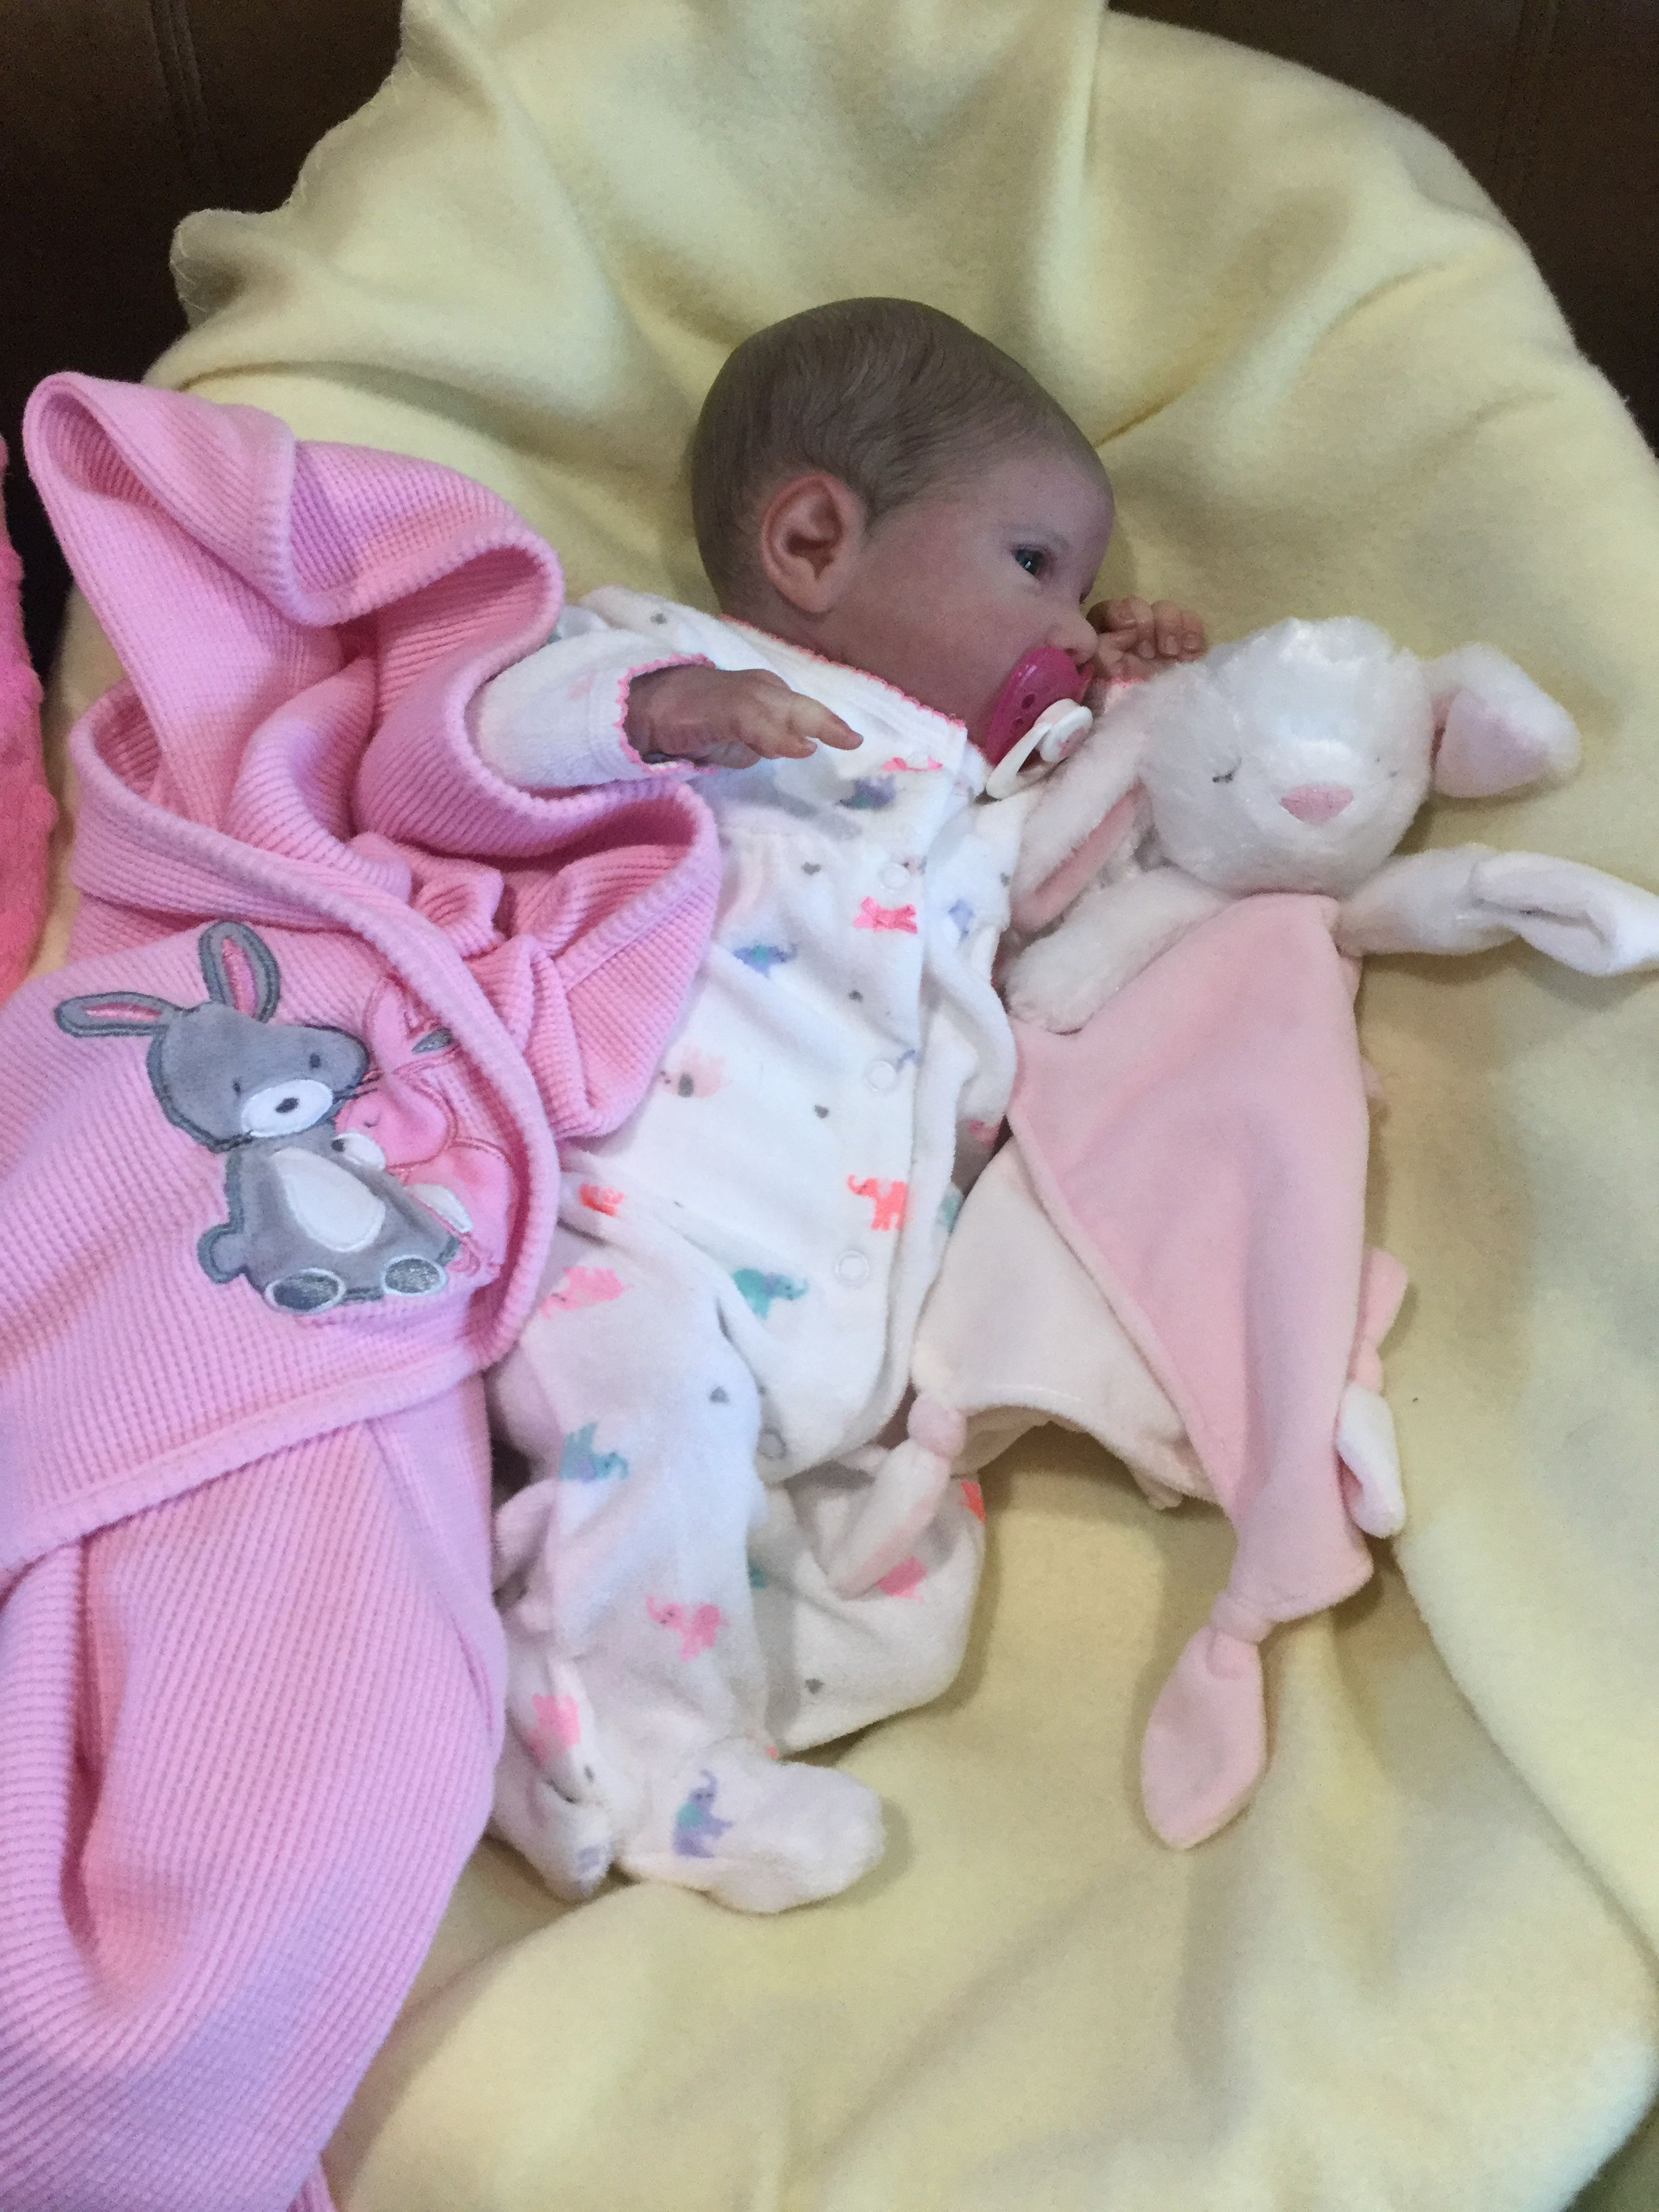 Chelsea Marie Reborn Baby Dolls For Toddlers Reborn Baby Dolls Realistic Baby Dolls